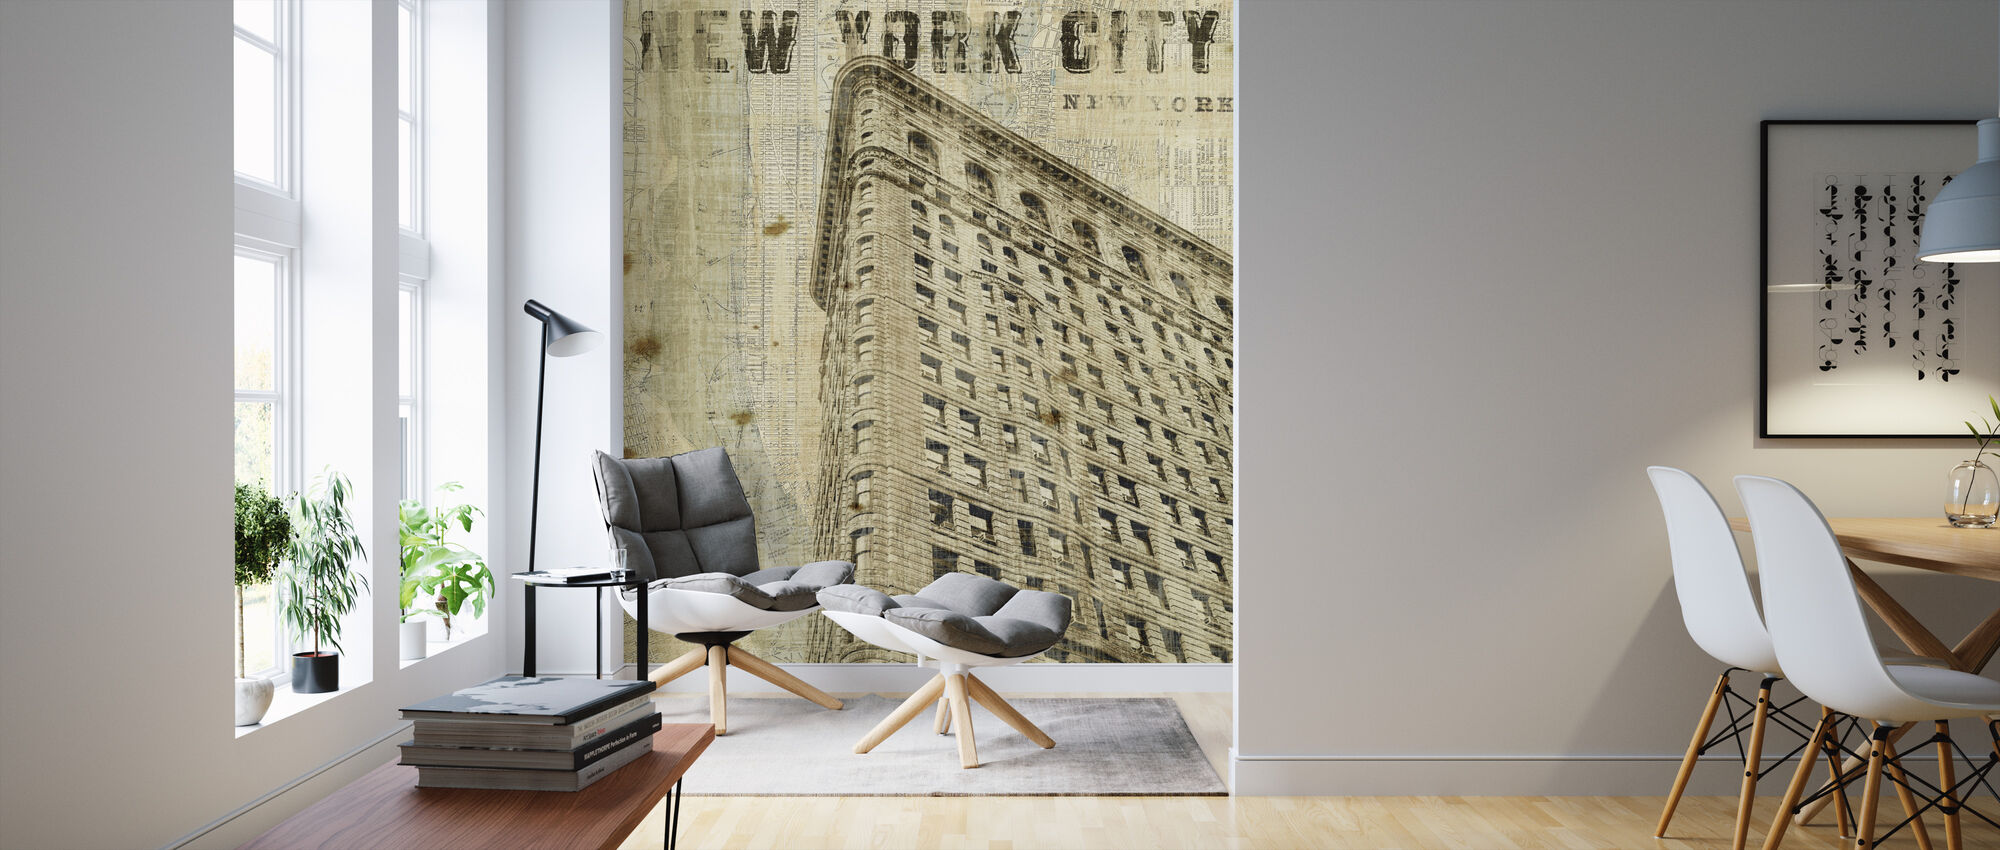 Vintage New York Flat Iron - Wallpaper - Living Room